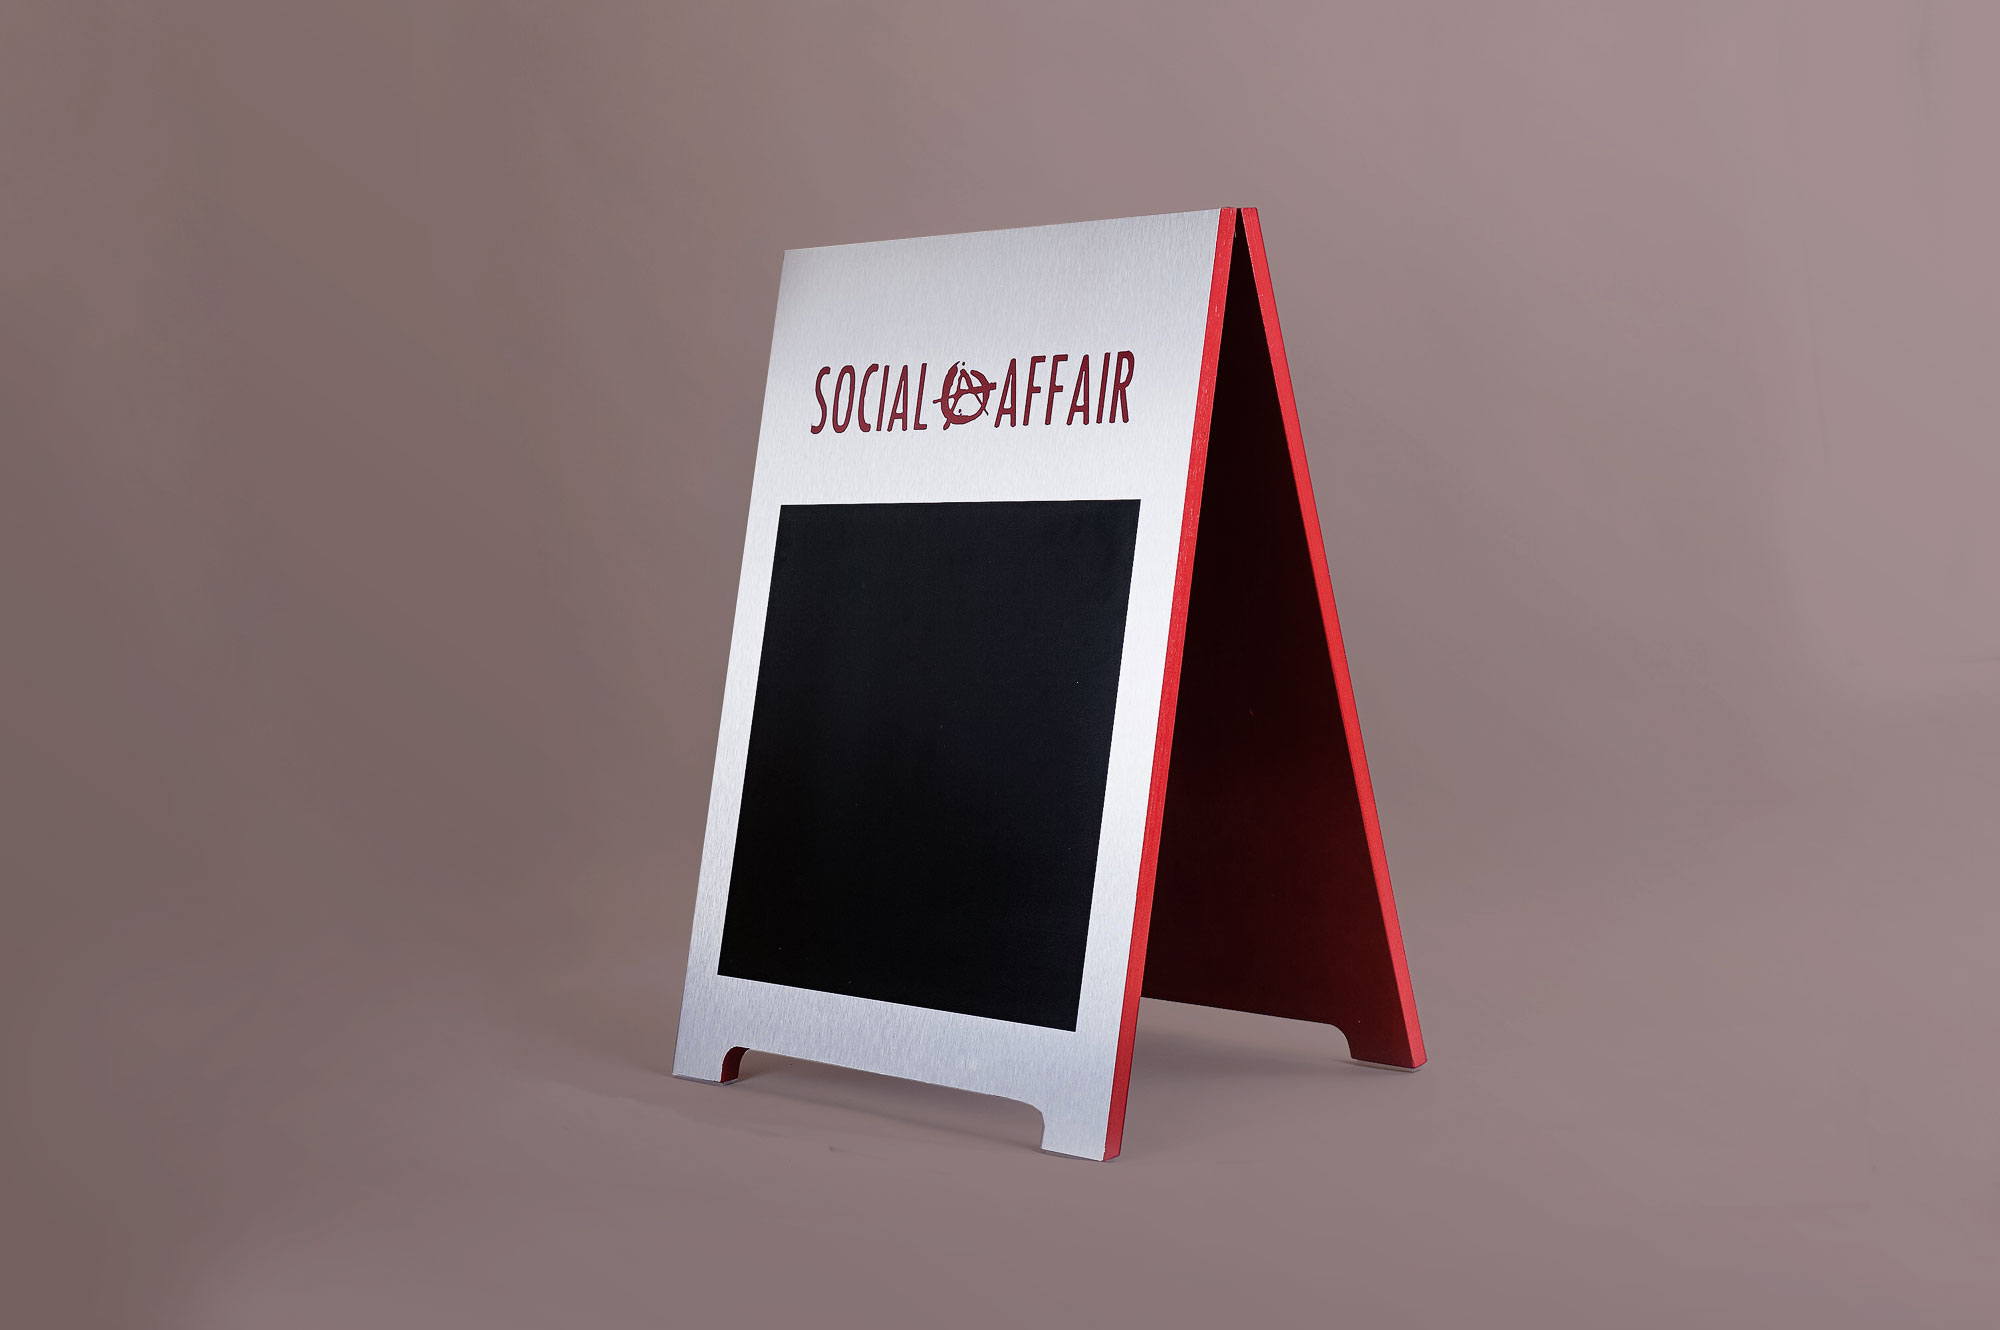 Metal and red A-frame sign for Social Affair, a restaurant serving artisanal food, wine and chai in a casual and modern lounge